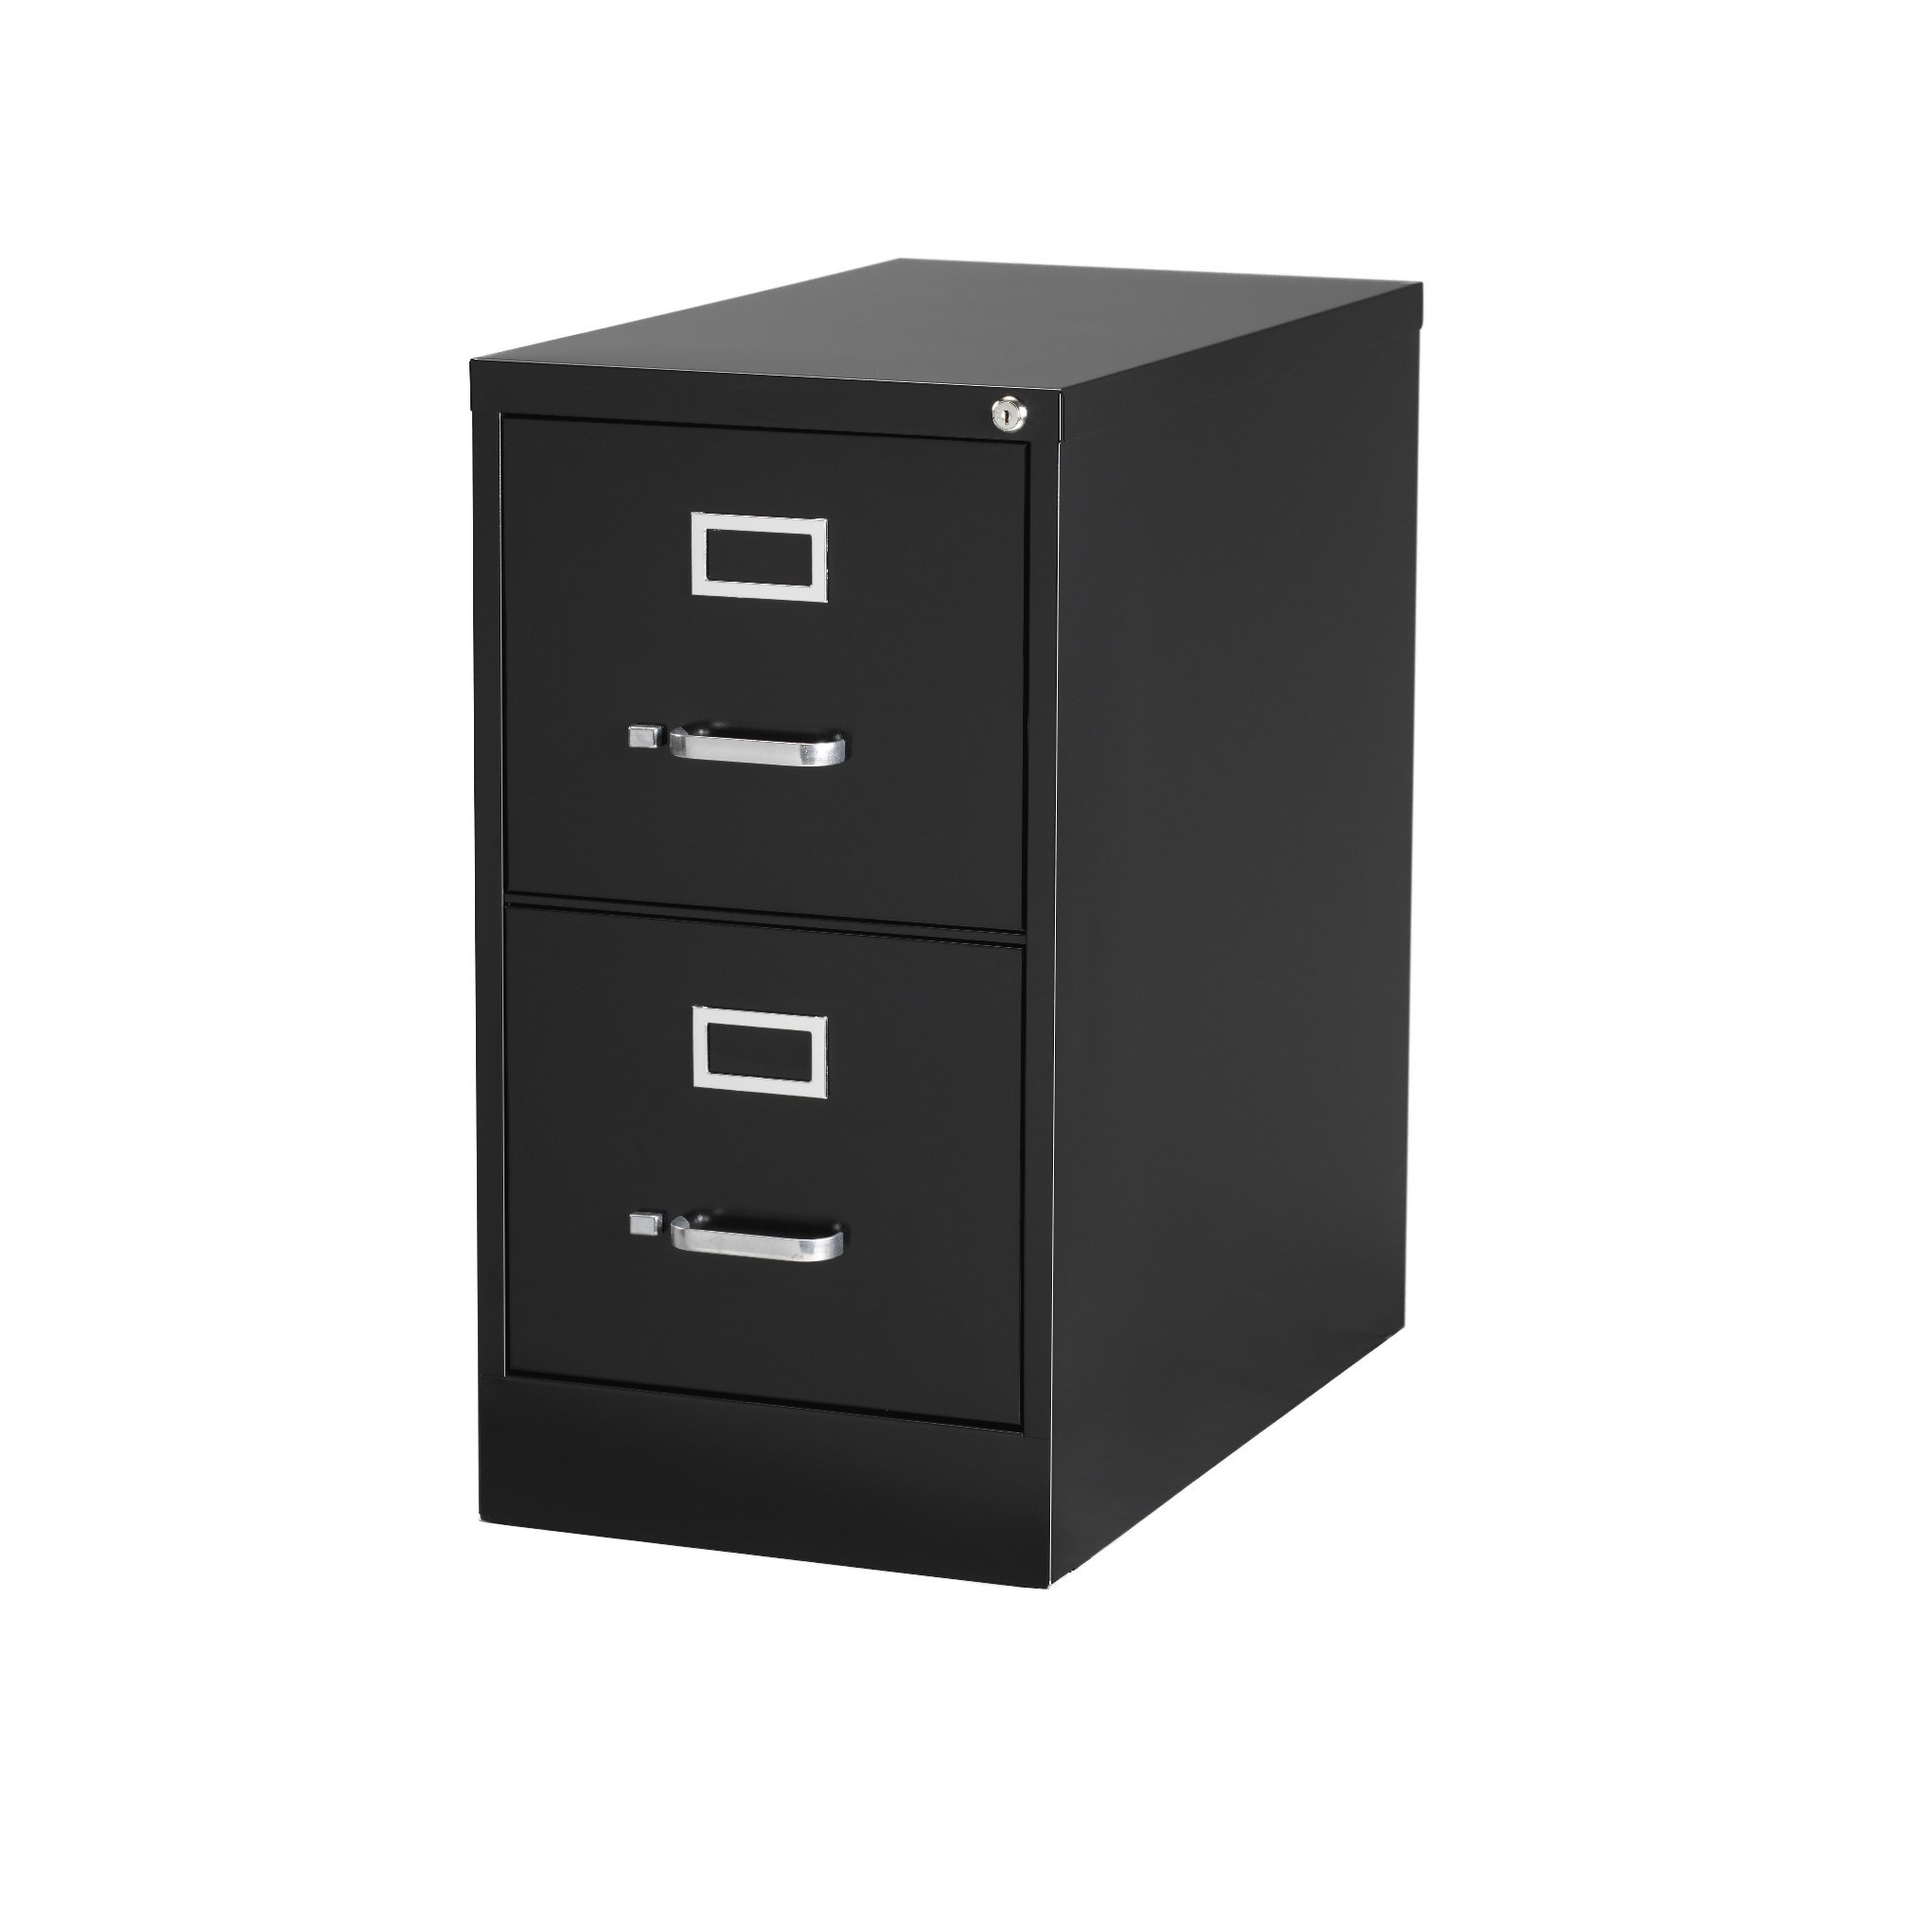 Hirsh Industries 22'' Deep Vertical File Cabinet 2-Drawer Letter Size Black, 17890, Lot of 1 by Hirsh Industries